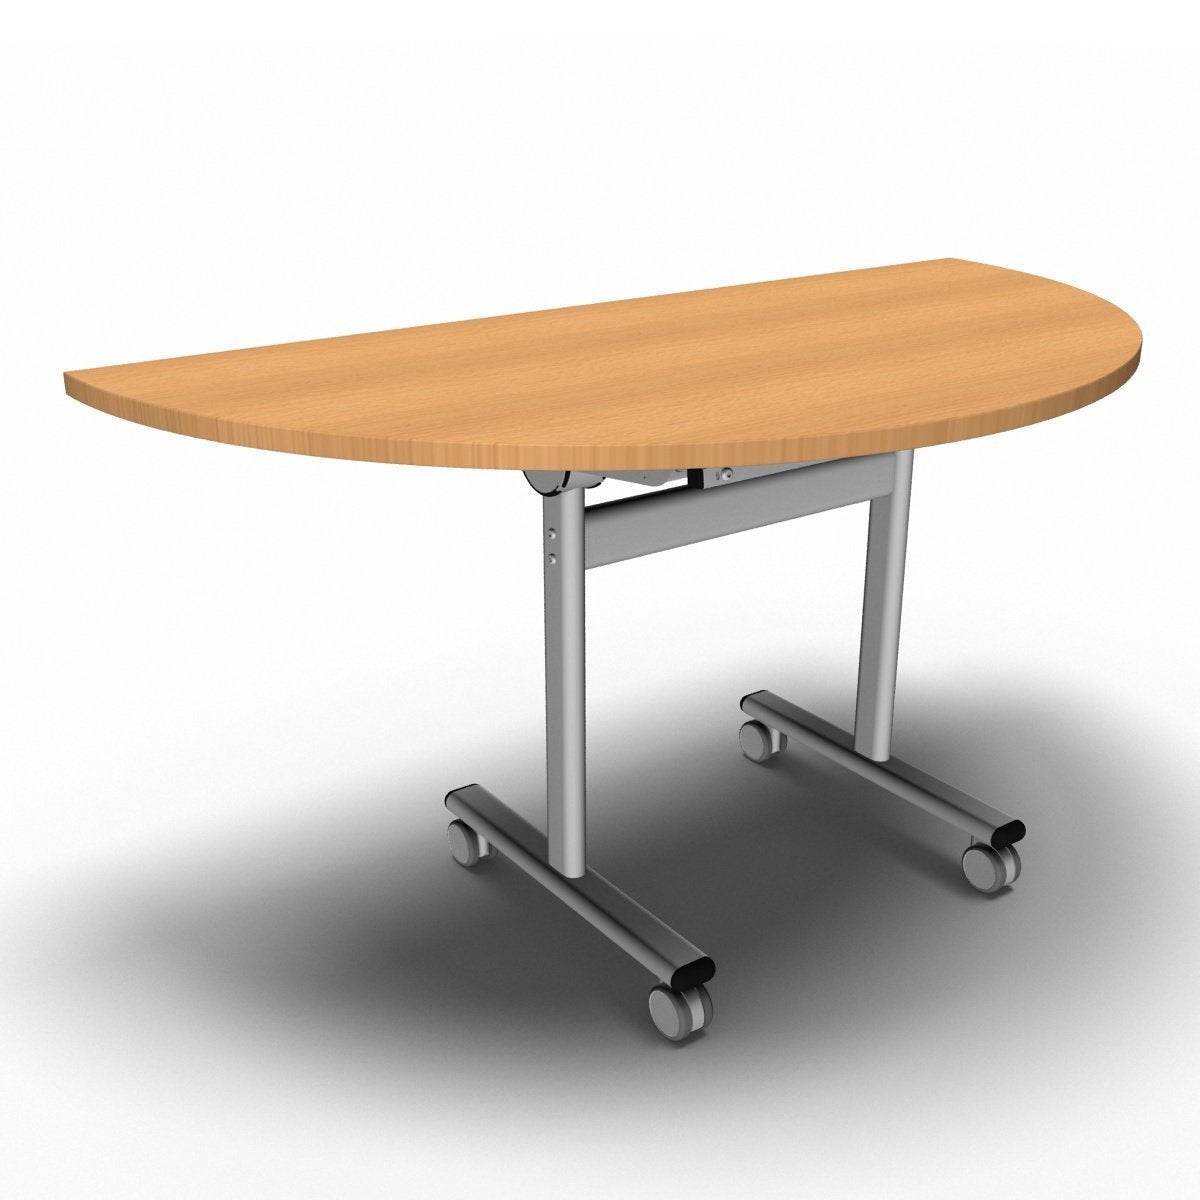 Table 1400 x 700 x 720mm / Semi Circular / Beech Synergy Flip Top Tables